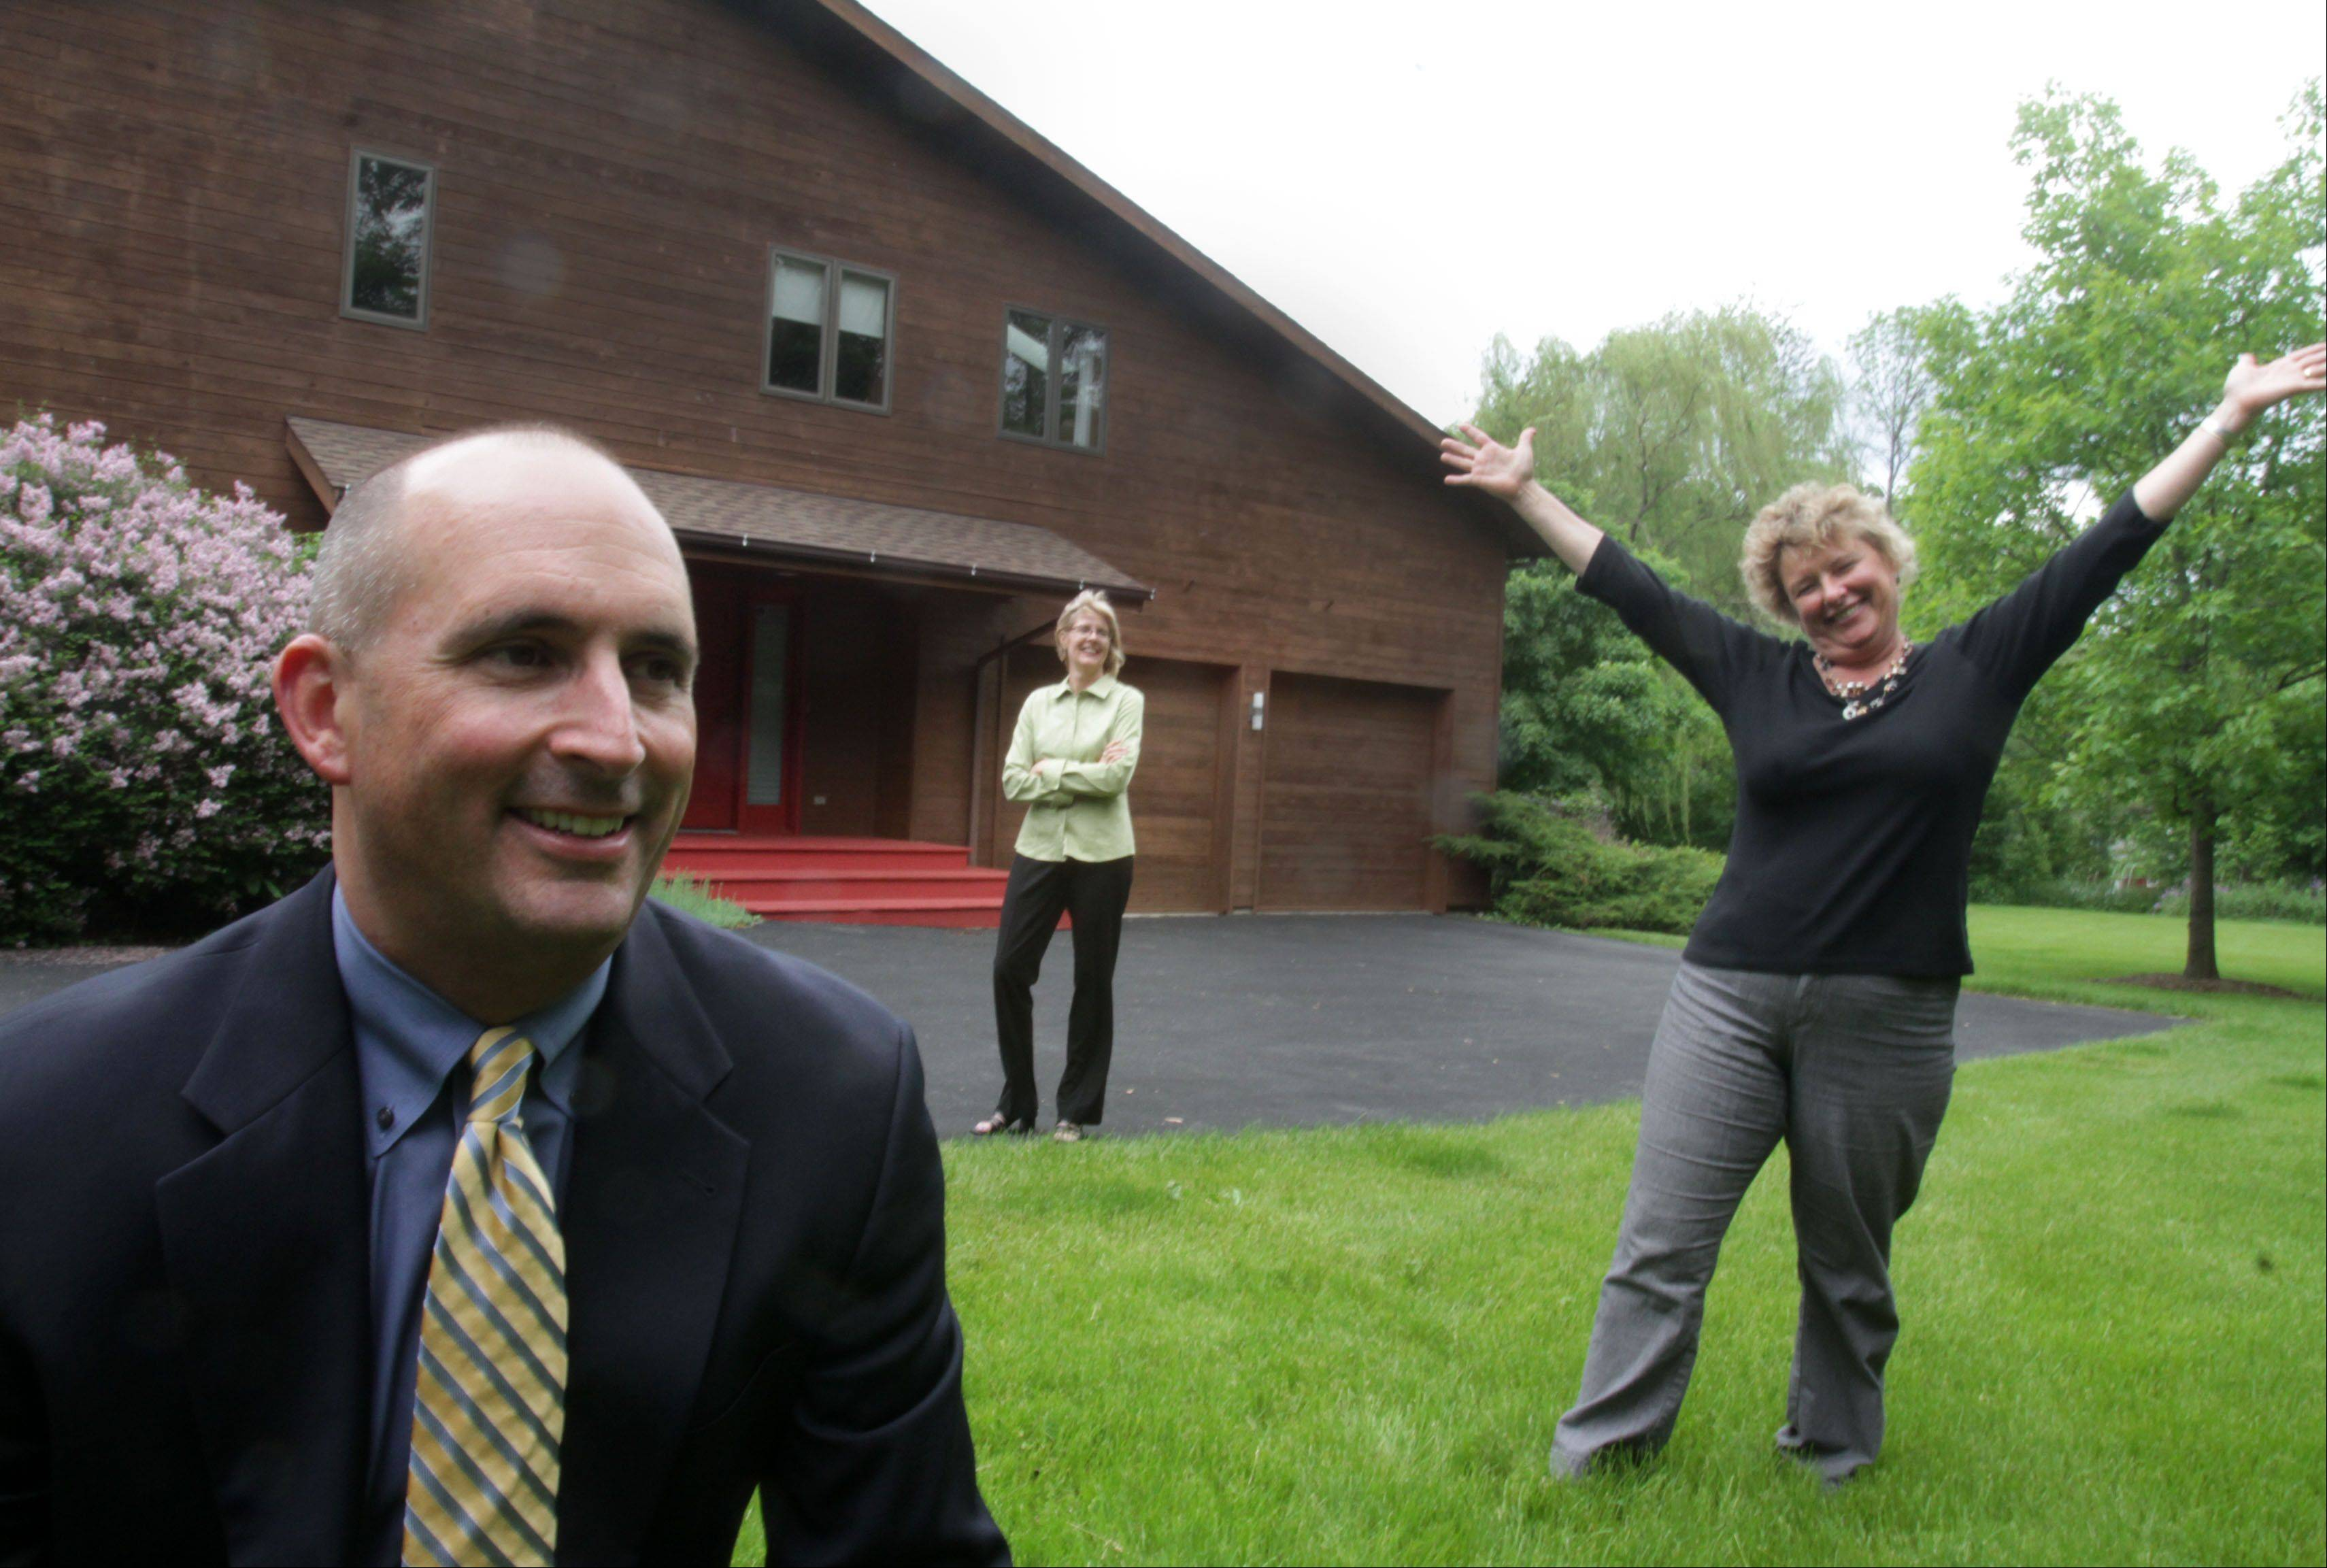 George LeClaire/gleclaire@dailyherald.com ¬ Realtor Mark Munro, left, former homeowner Irisa Putnins, center and Mary Loughman, the stager, background, outside Putnins former home in Deer Park that they improved and sold in one day last year. Here on May 31, 2013.